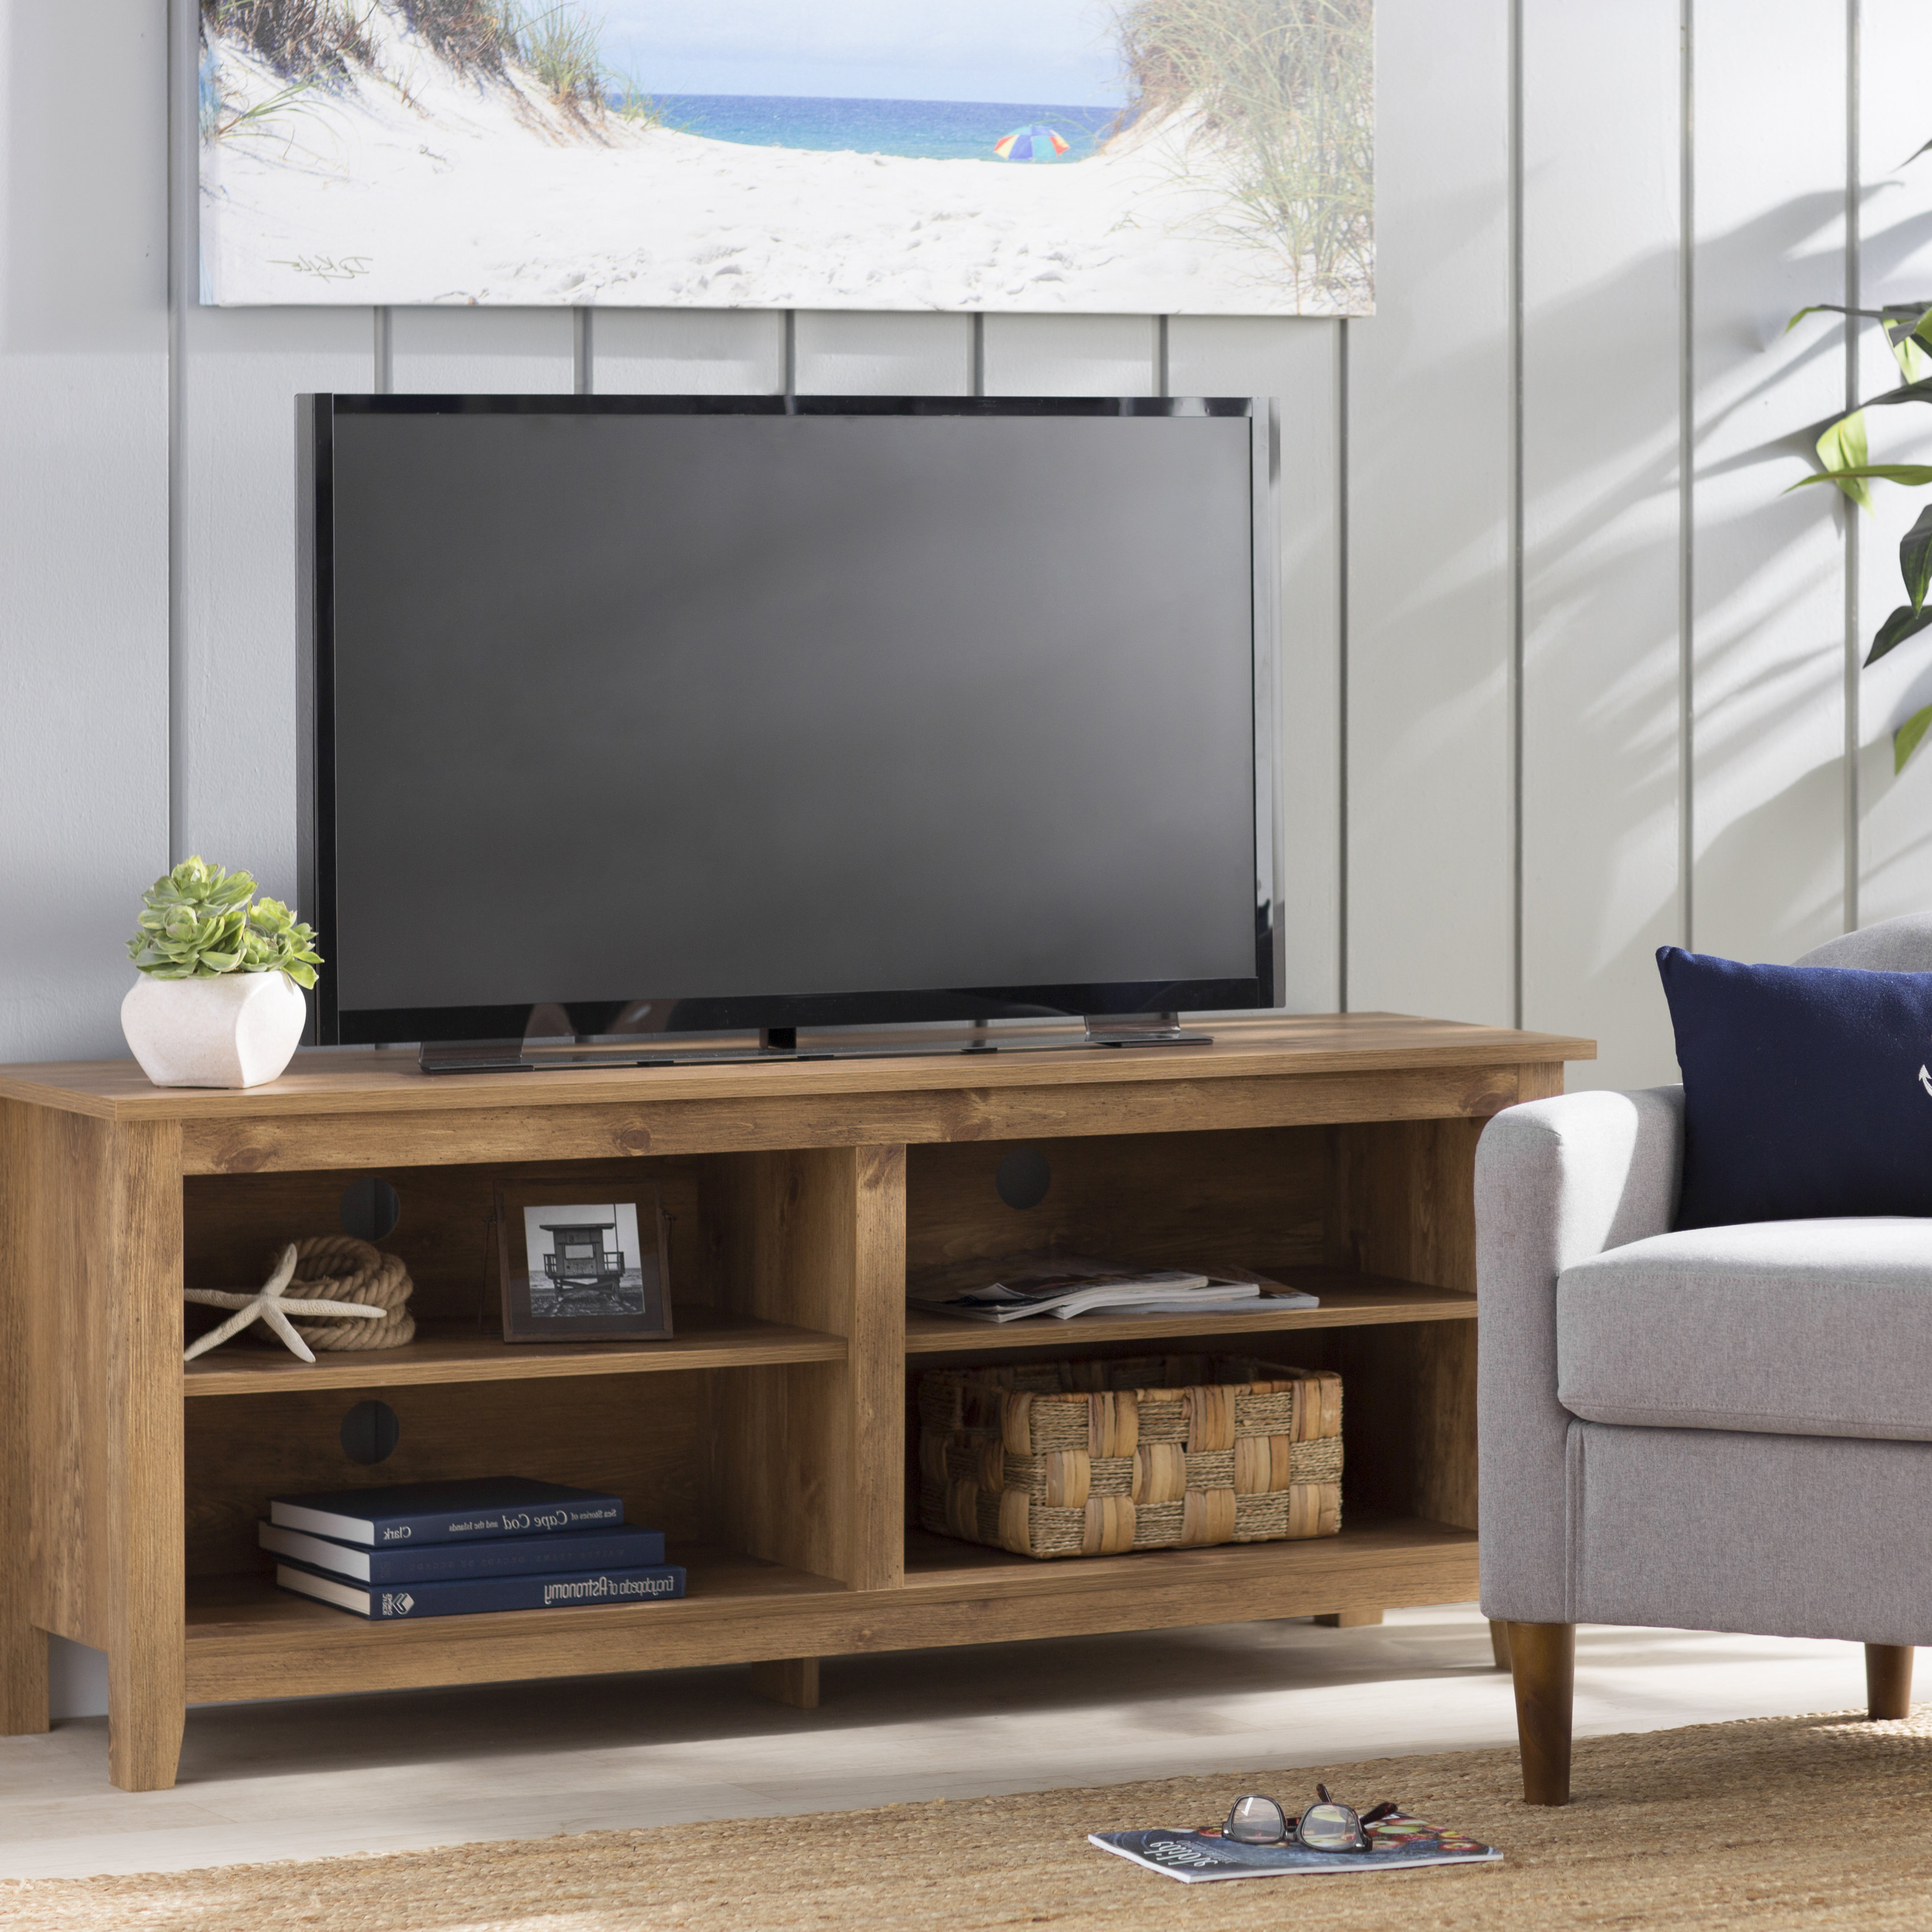 Long Tv Stands Furniture For Most Up To Date Tv Stands & Entertainment Centers You'll Love (View 9 of 20)